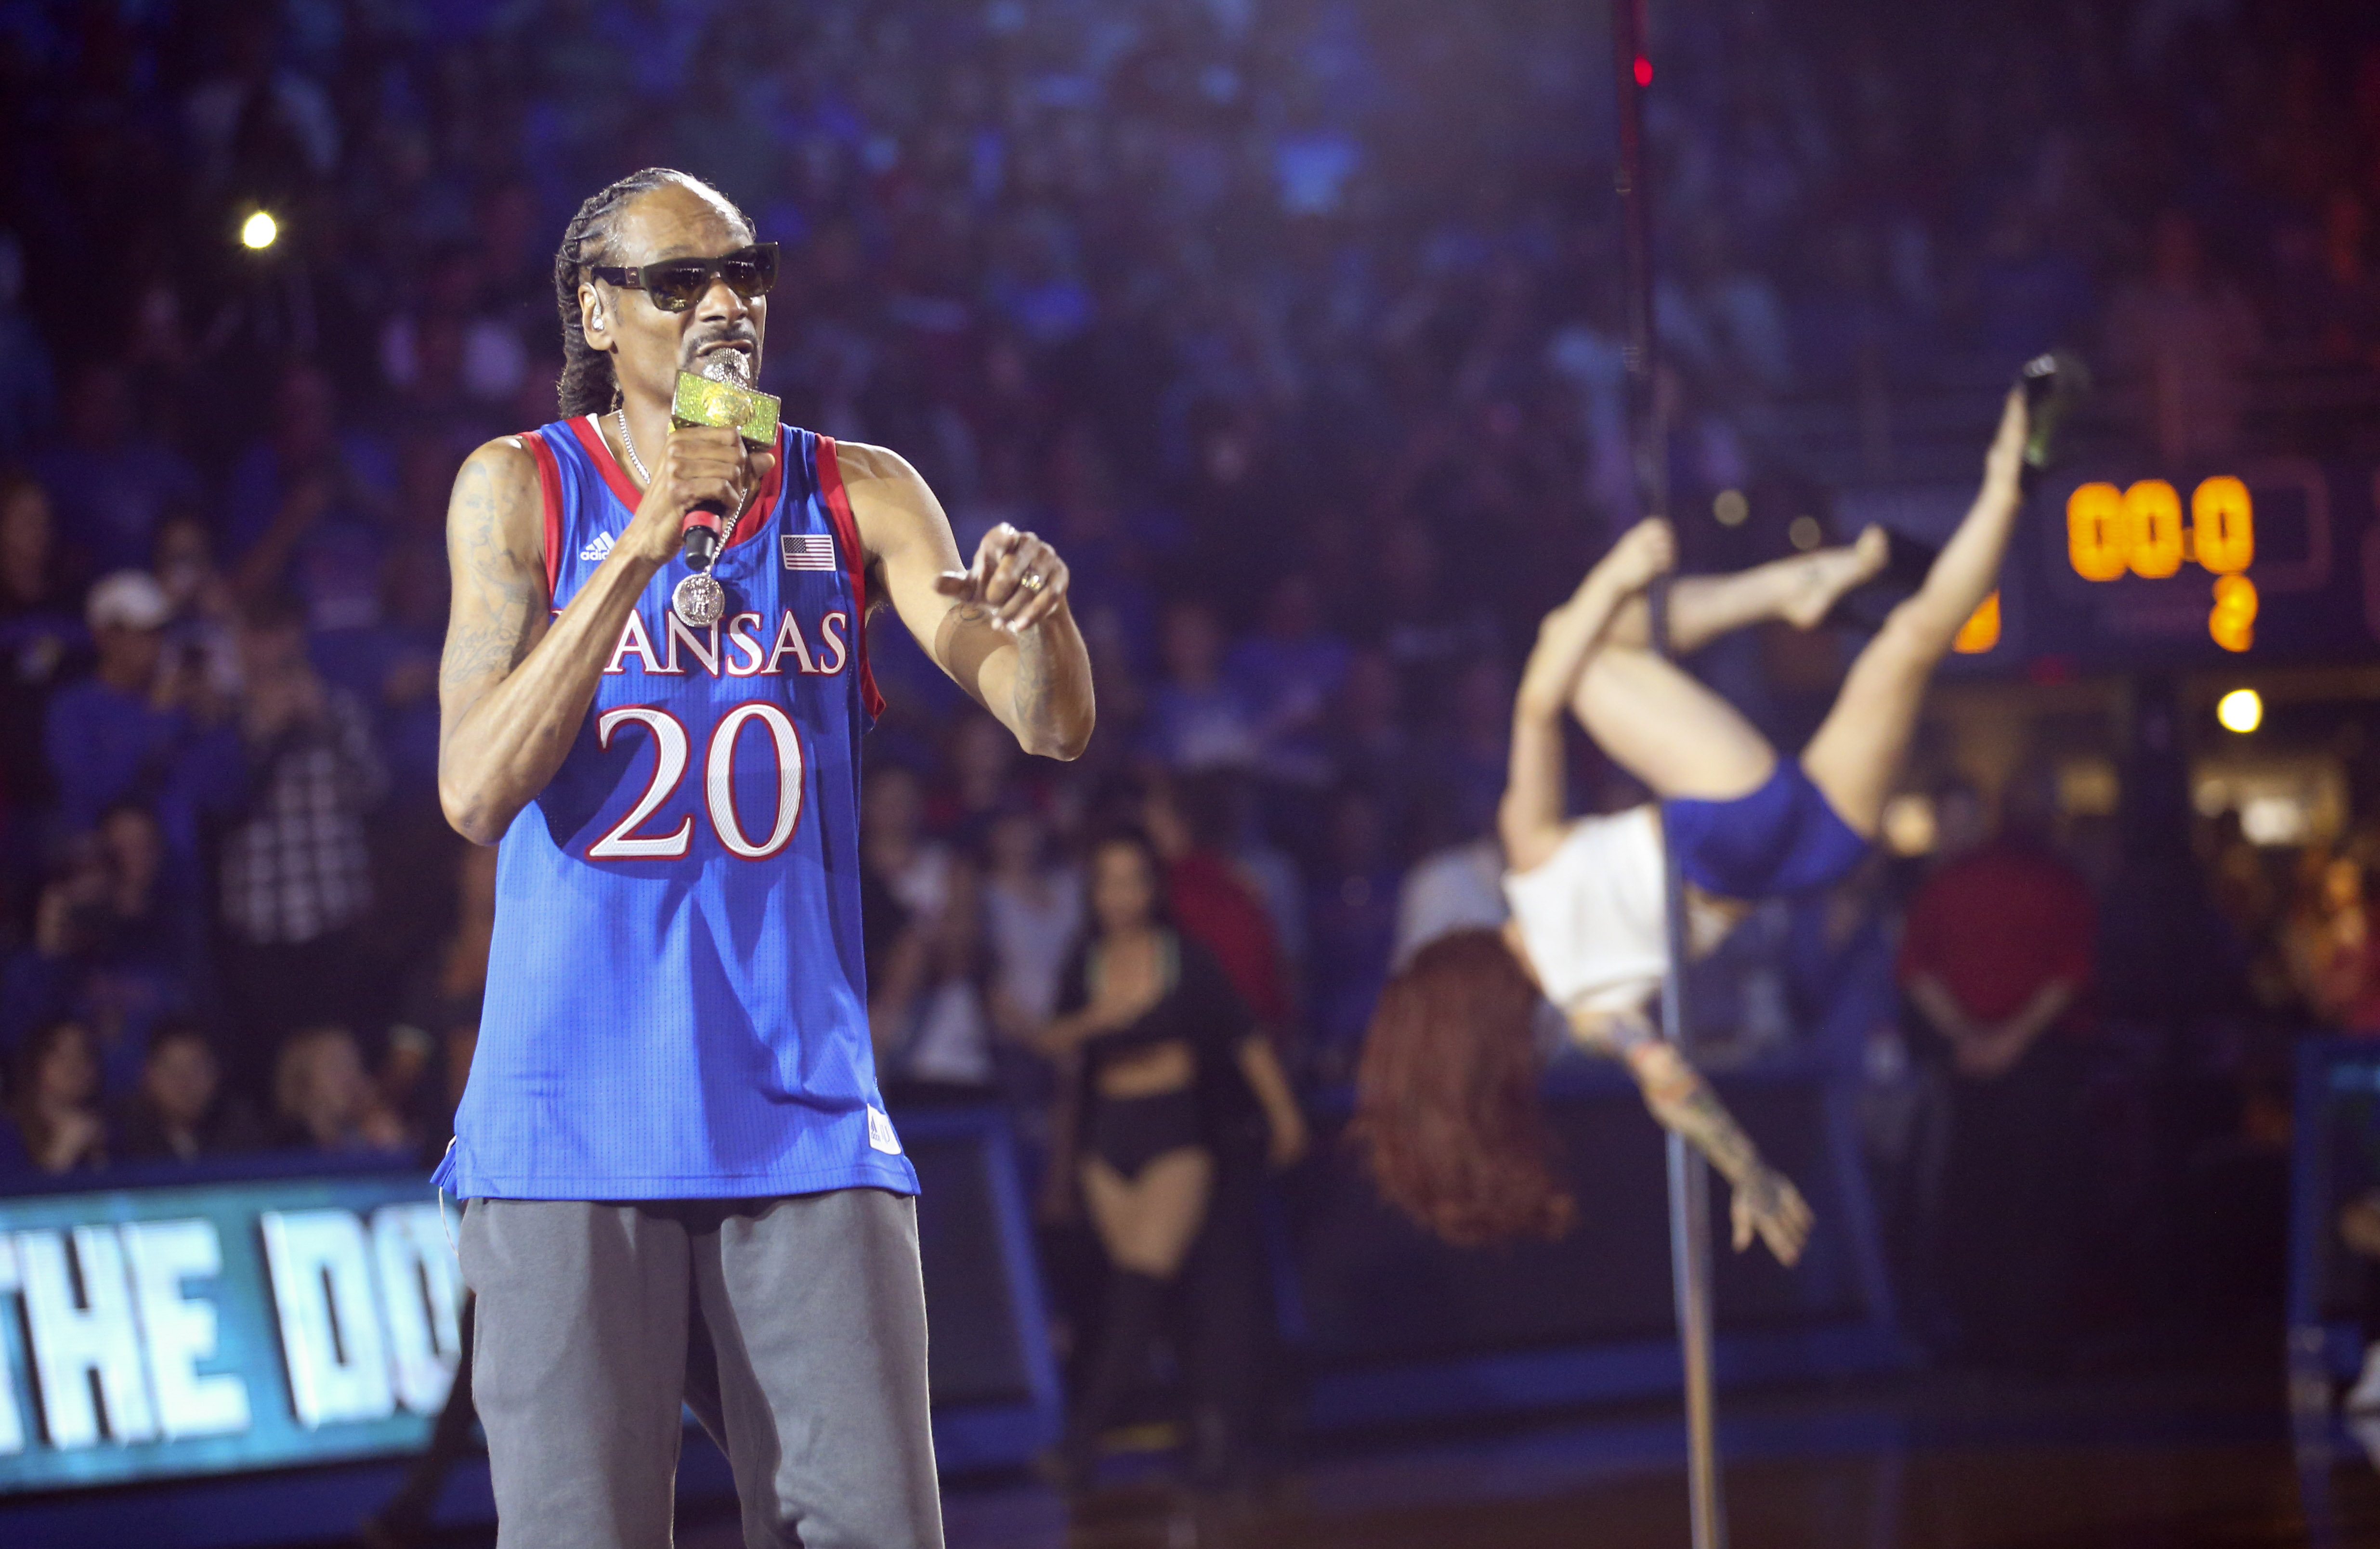 Kansas apologizes for risque Snoop Dogg show at hoops event   WJHL ...